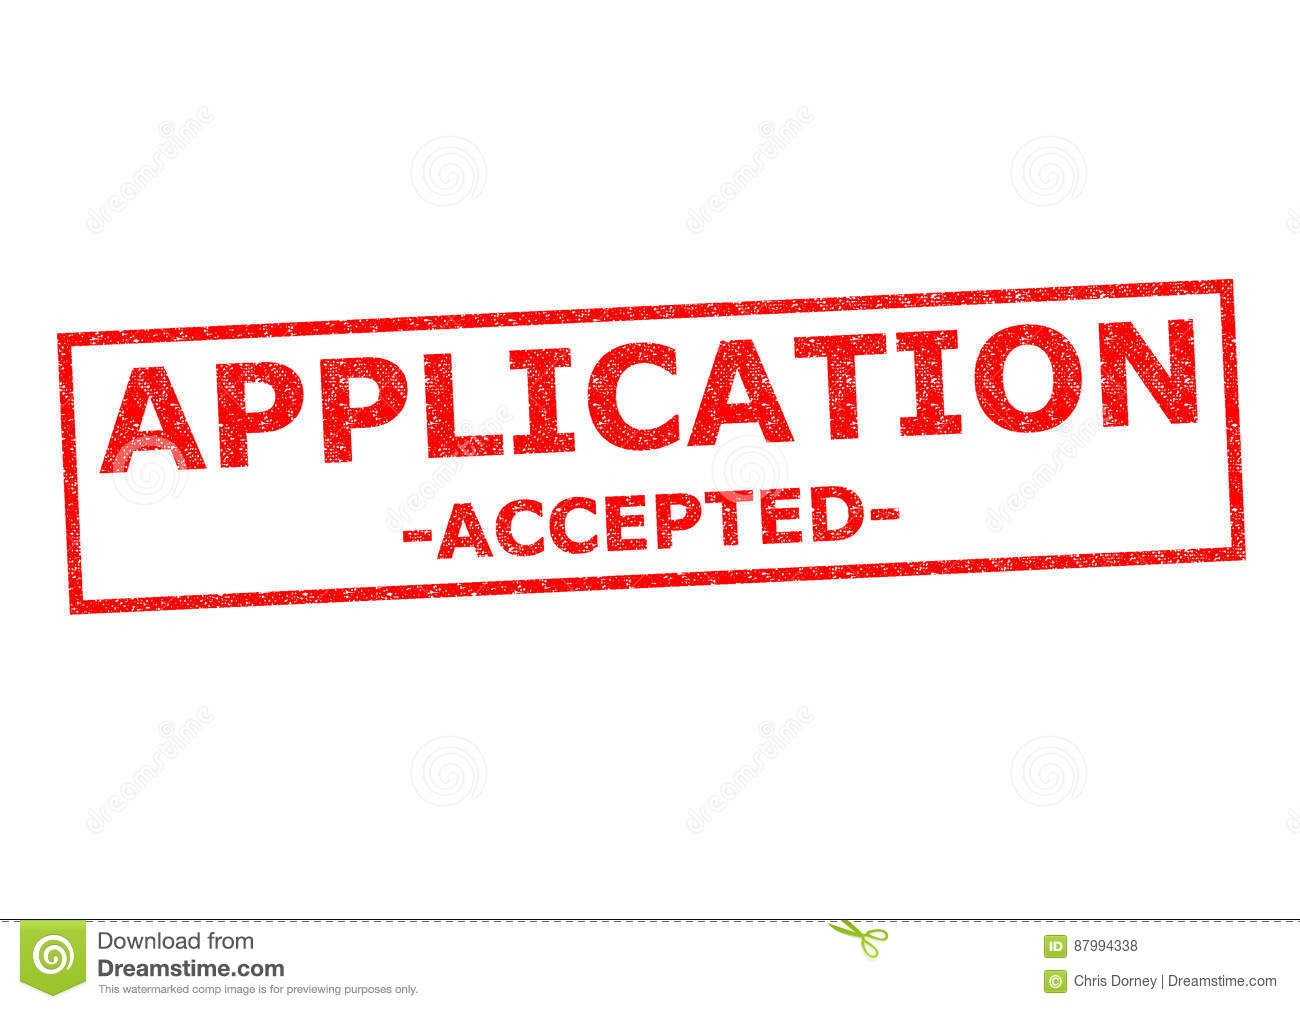 APPLICATION ACCEPTED